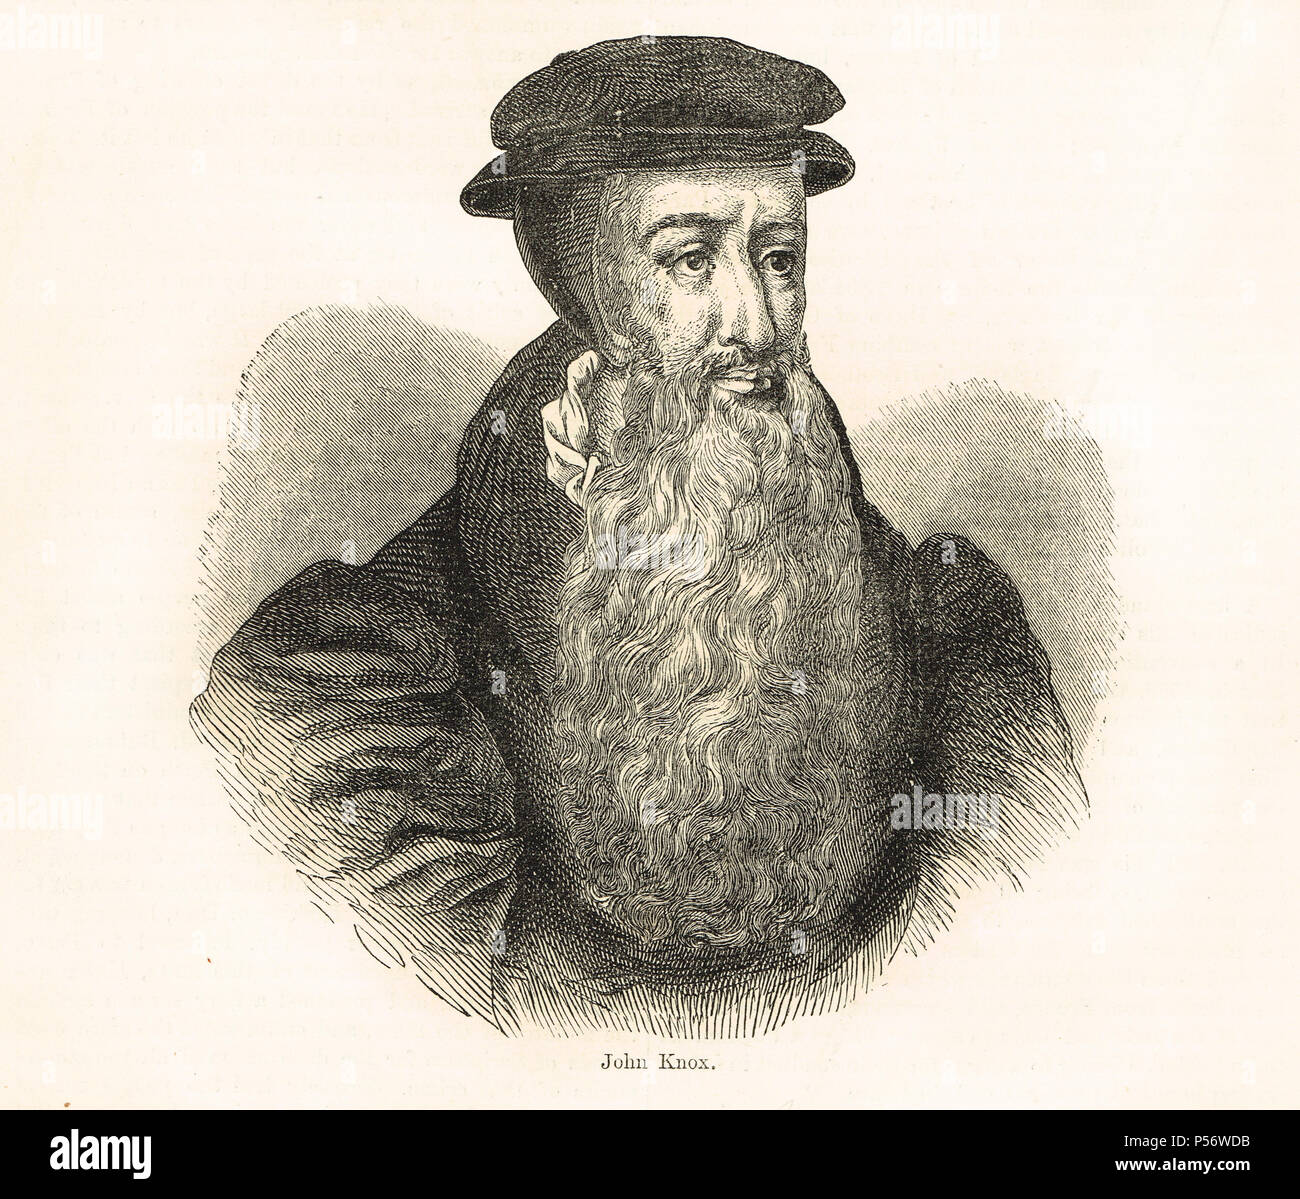 John Knox, Scottish Theologian, founder of the Presbyterian Church of Scotland and leader of the Scottish Reformation - Stock Image